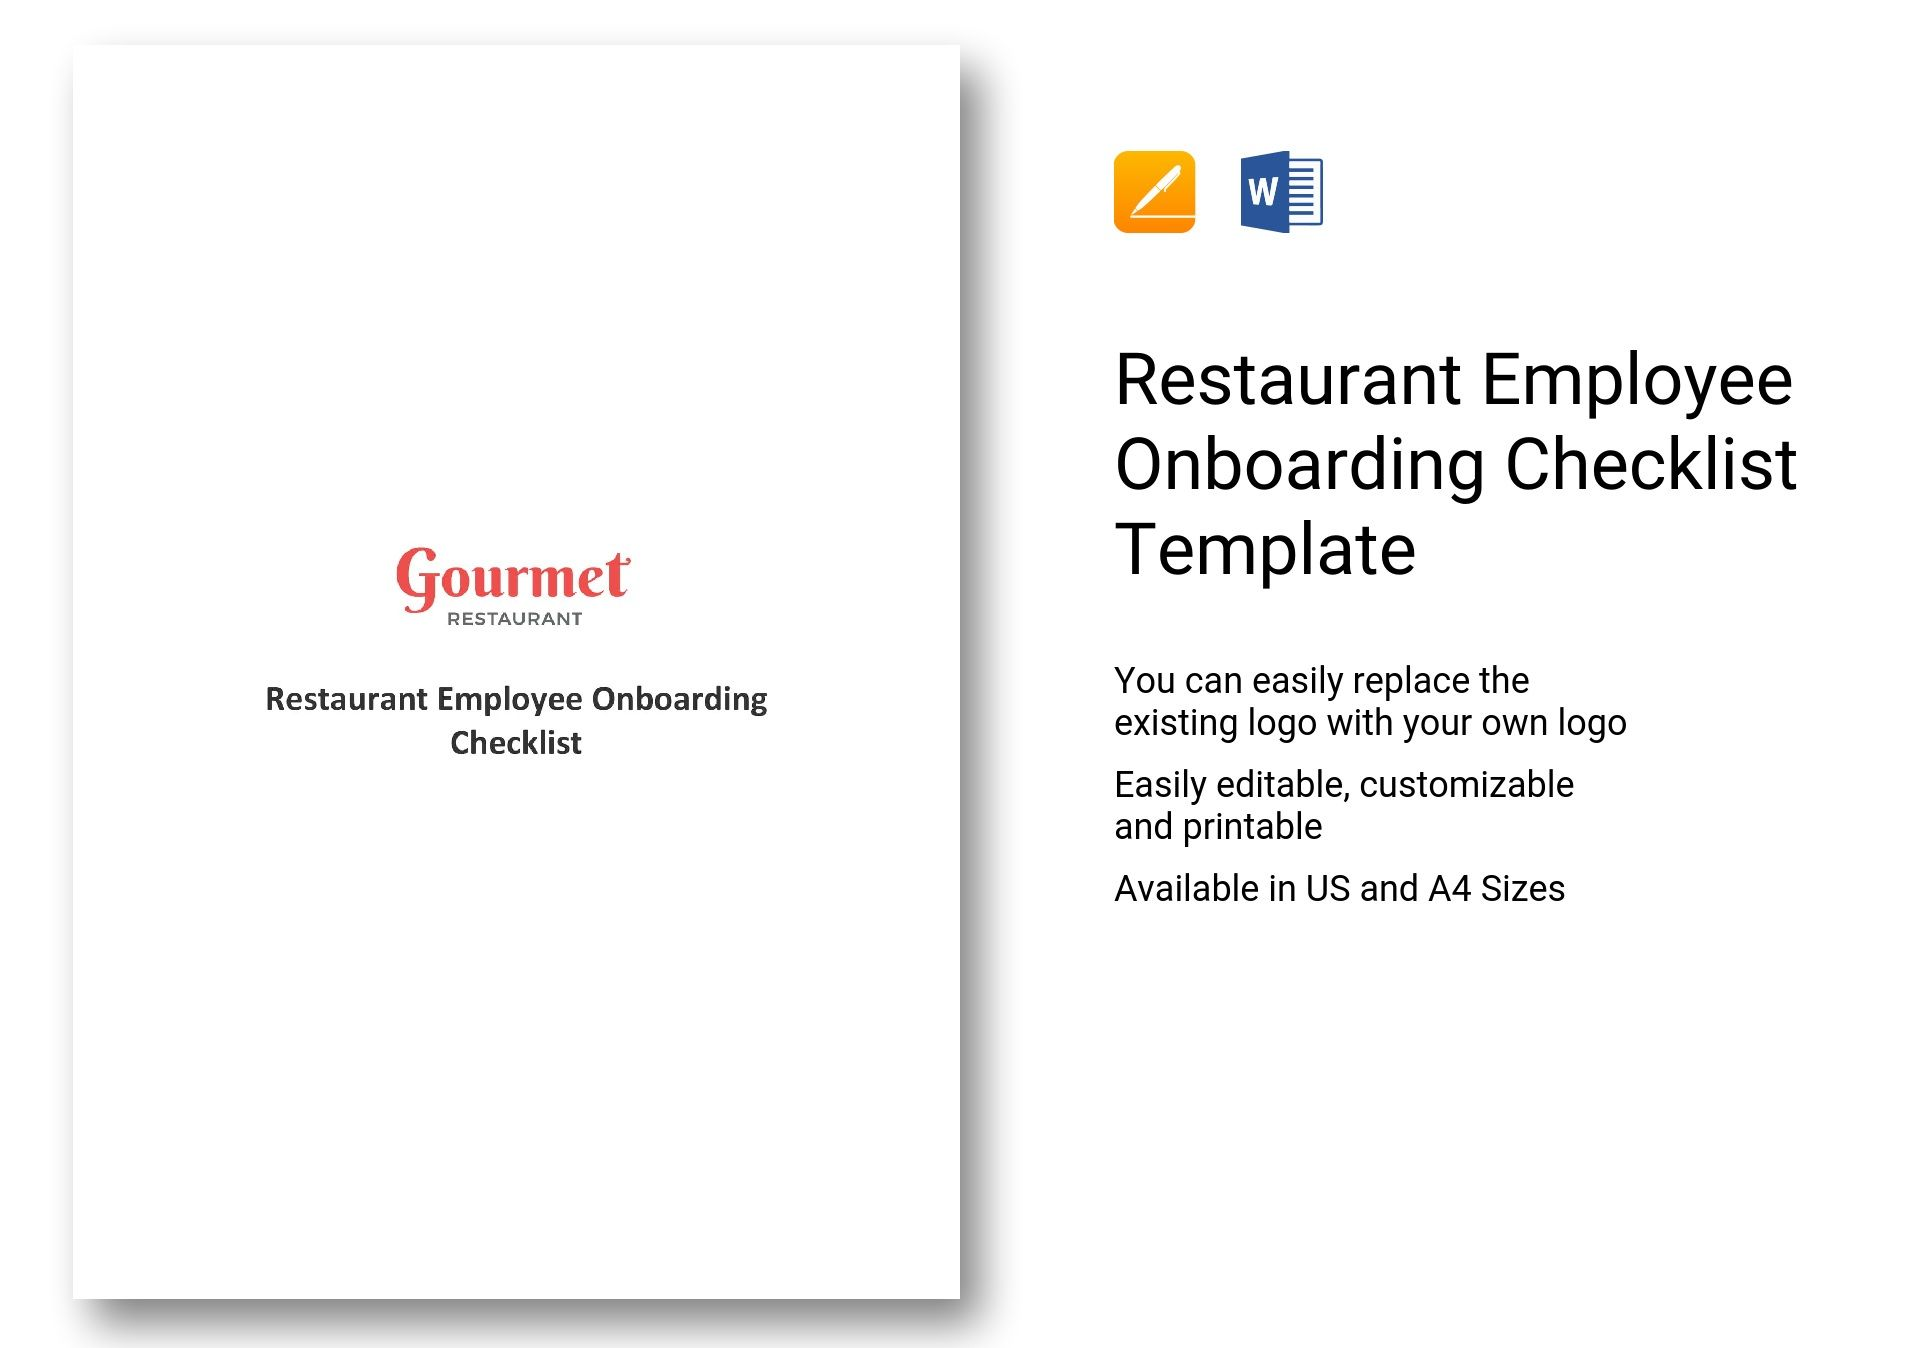 Restaurant Employee Onboarding Checklist Template In MS